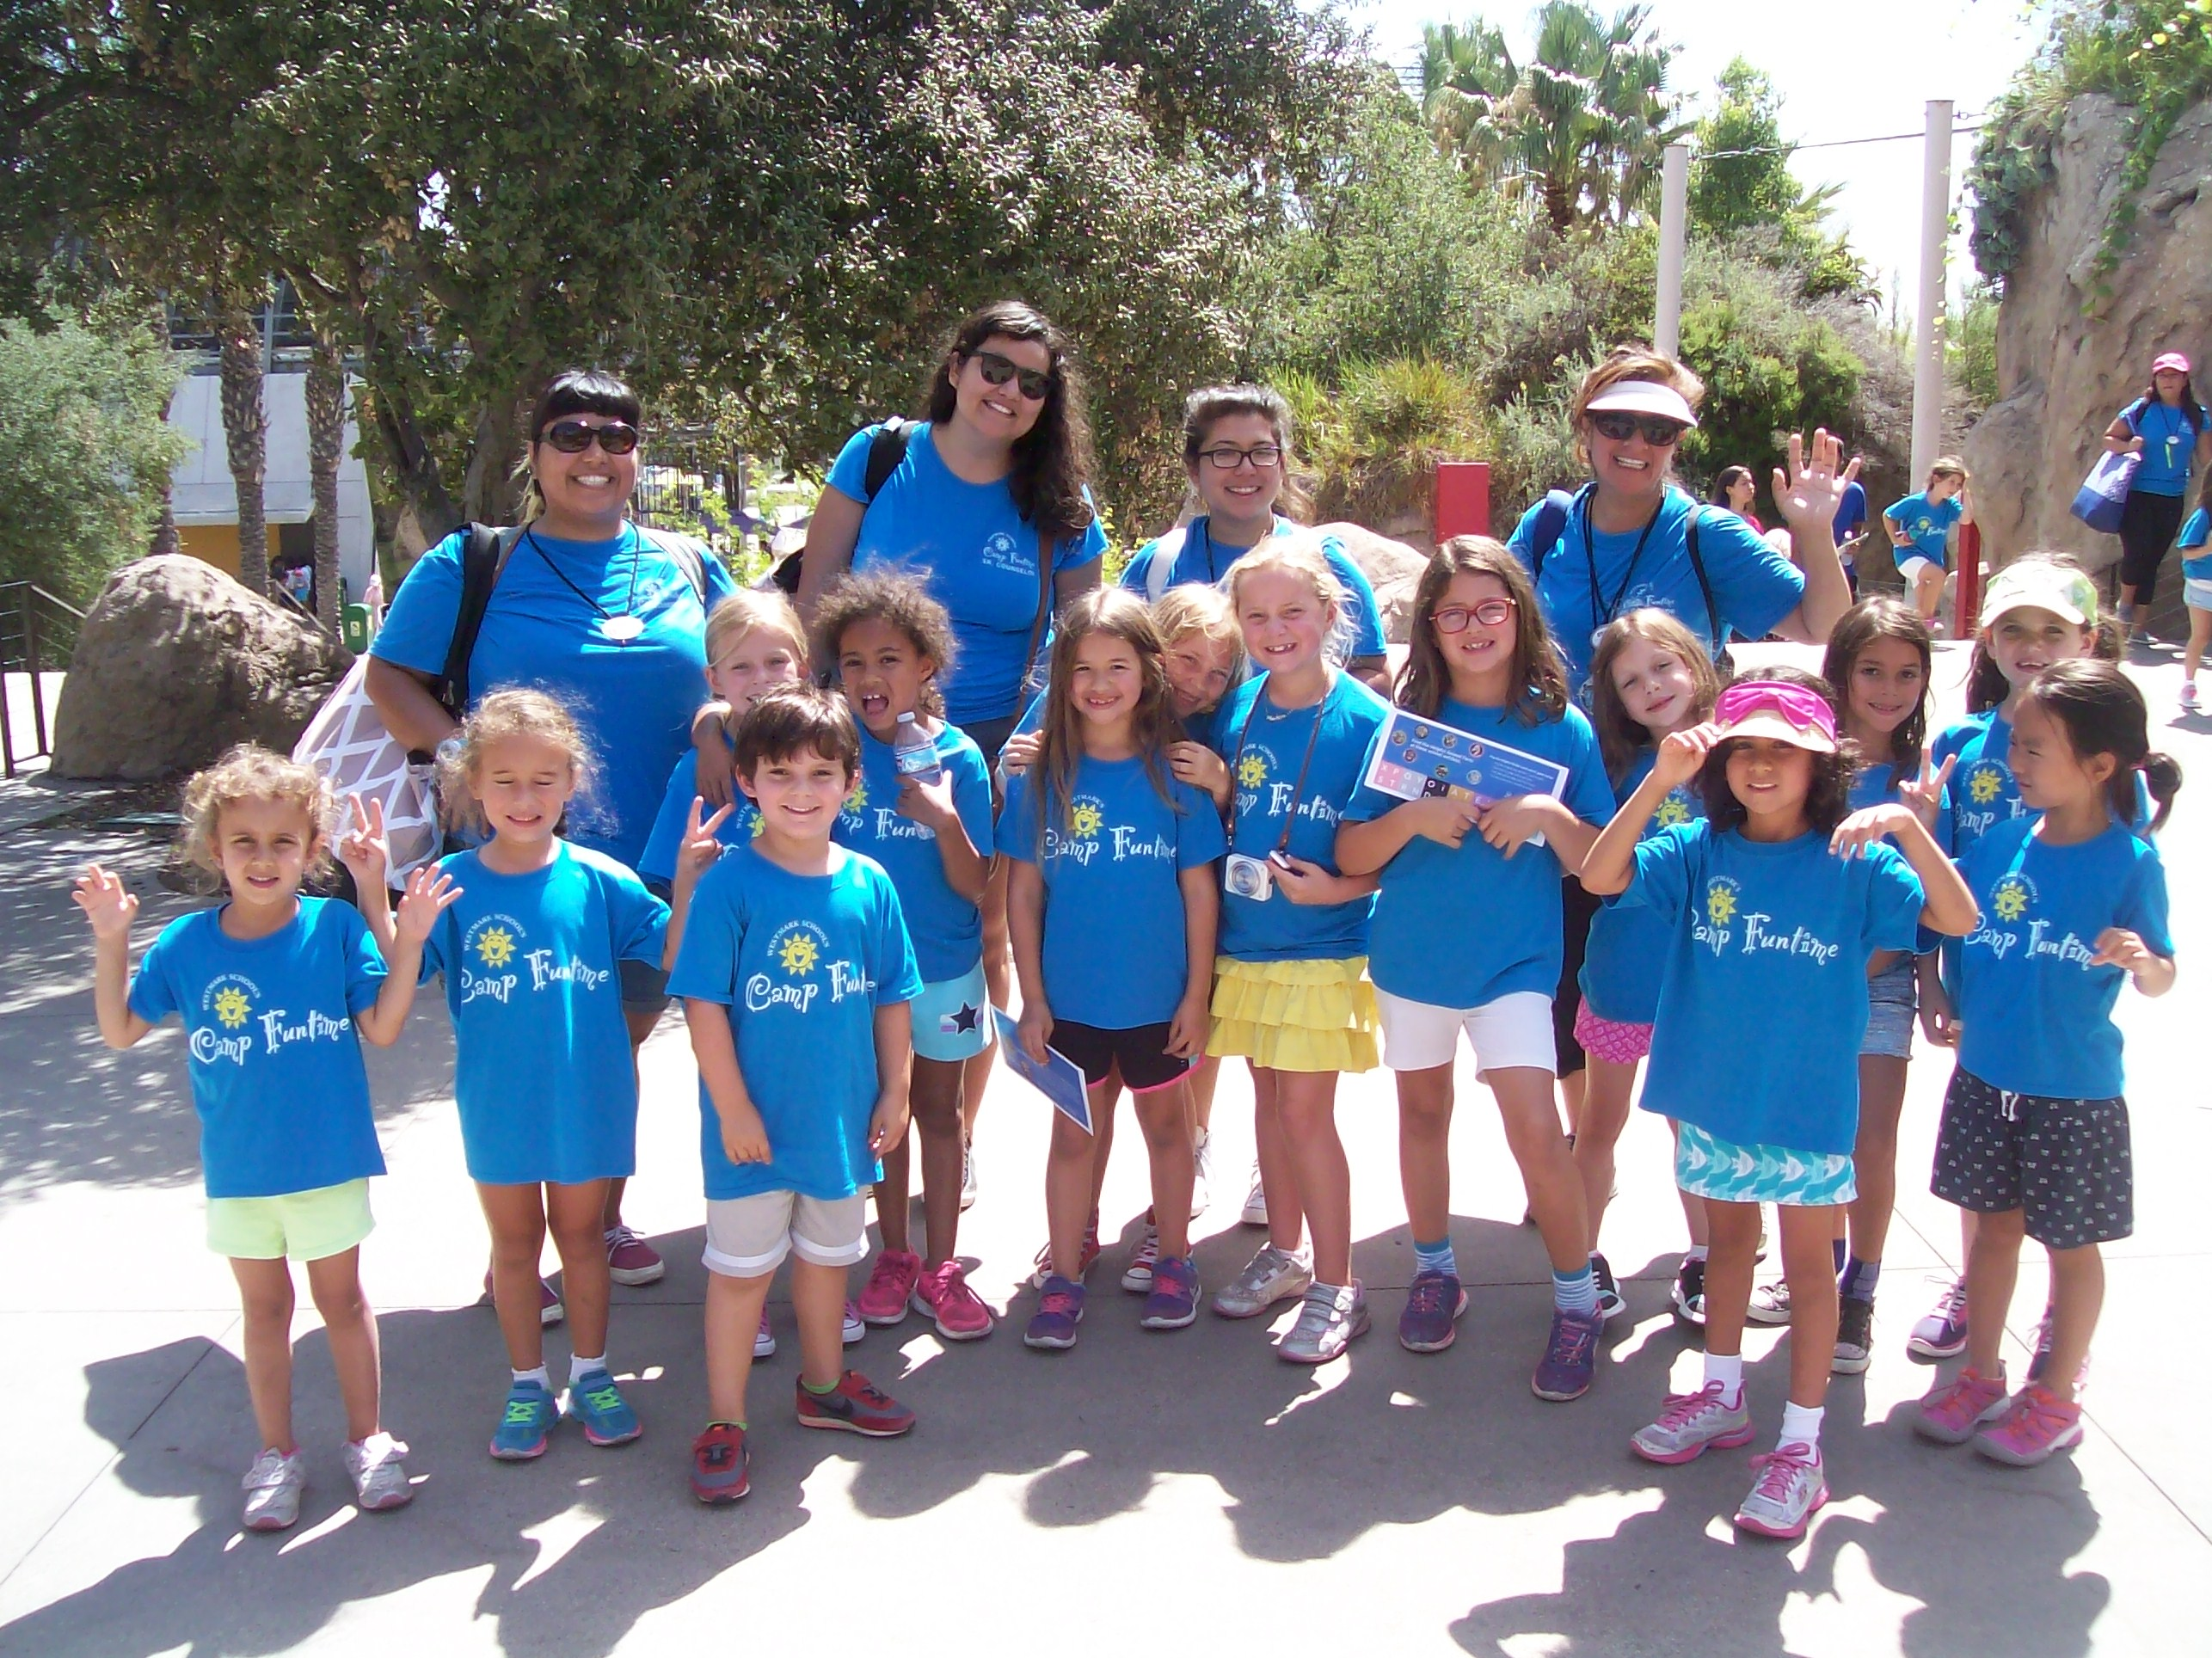 Camp Funtime- Children's Summer Camp, Day Camp in Encino ...